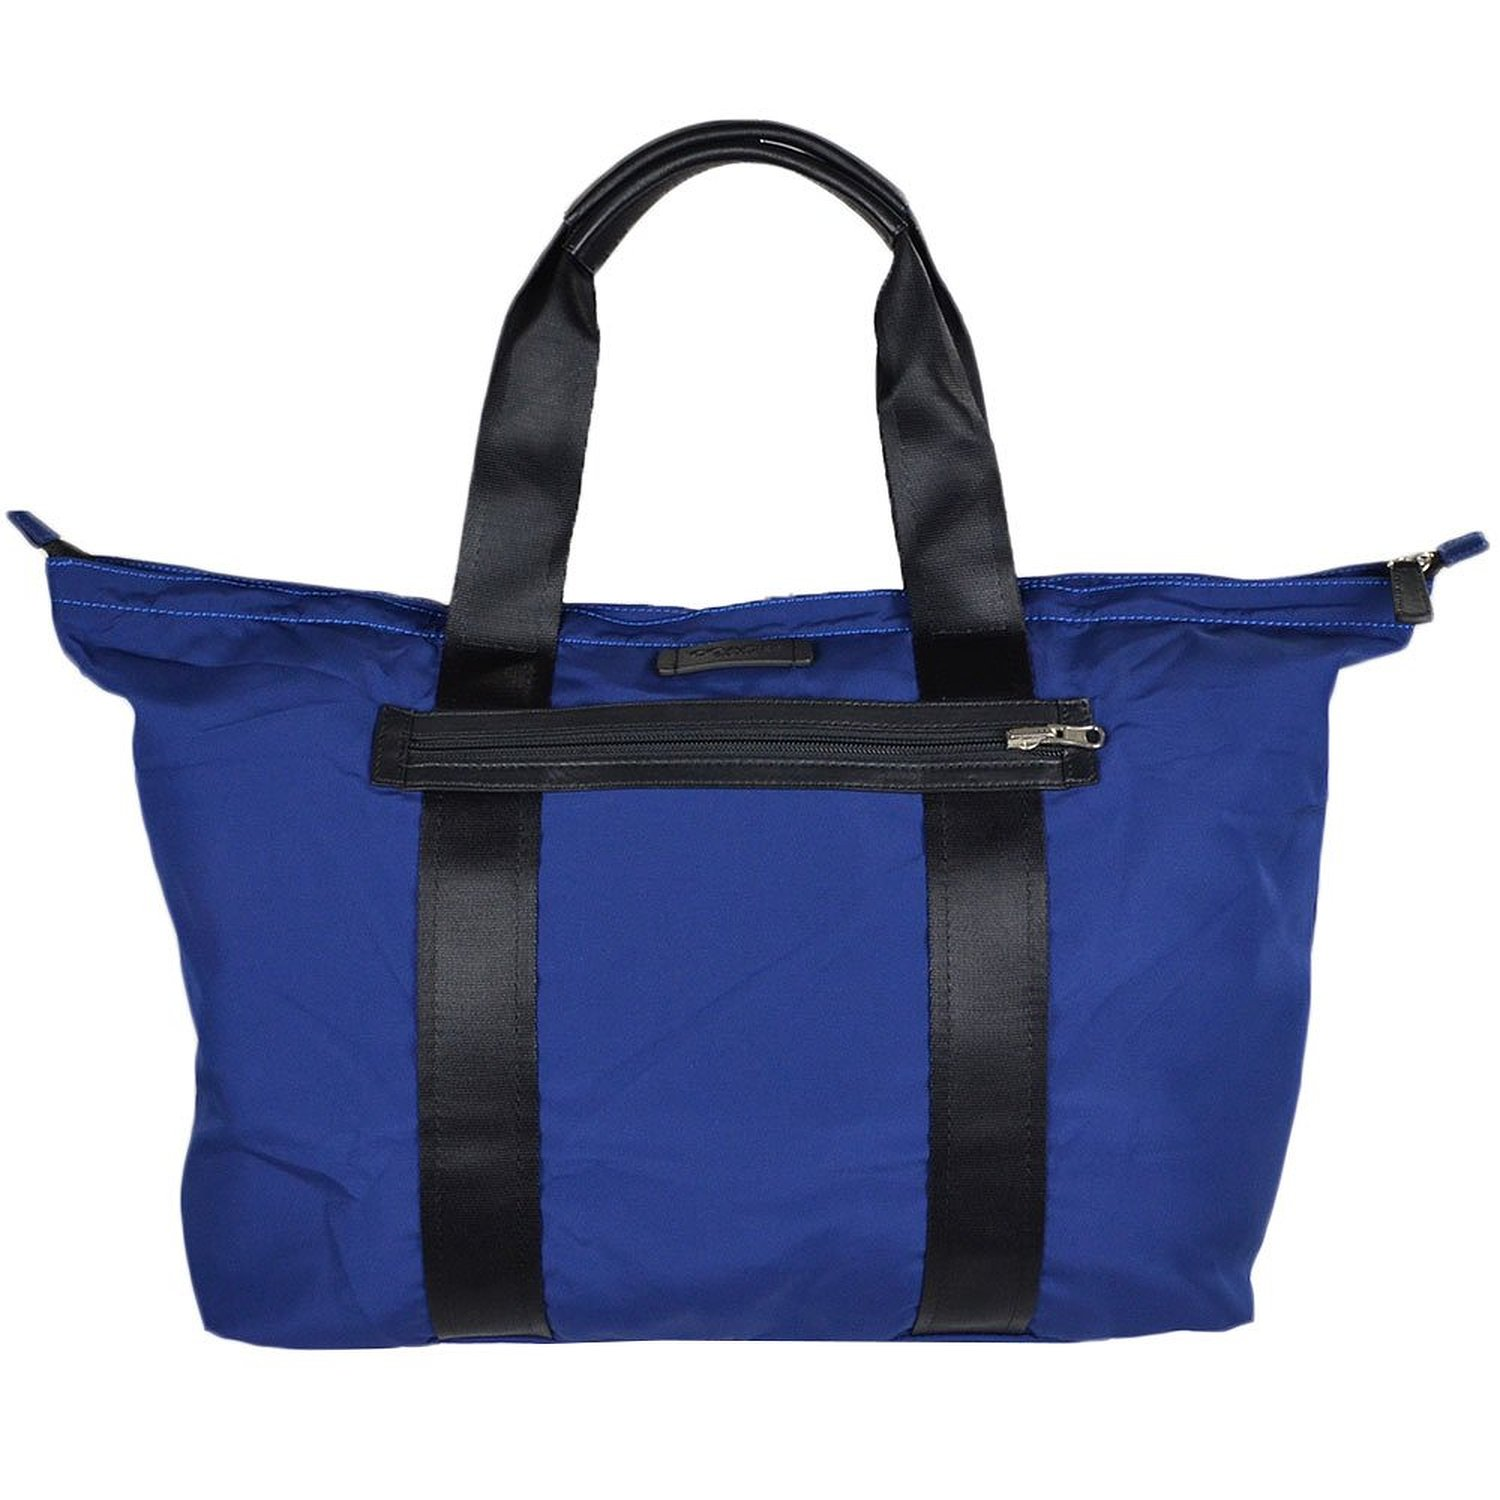 Creative  COACH Boston Bag With Shoulder 5404 Leather Travel Bag Men And Women